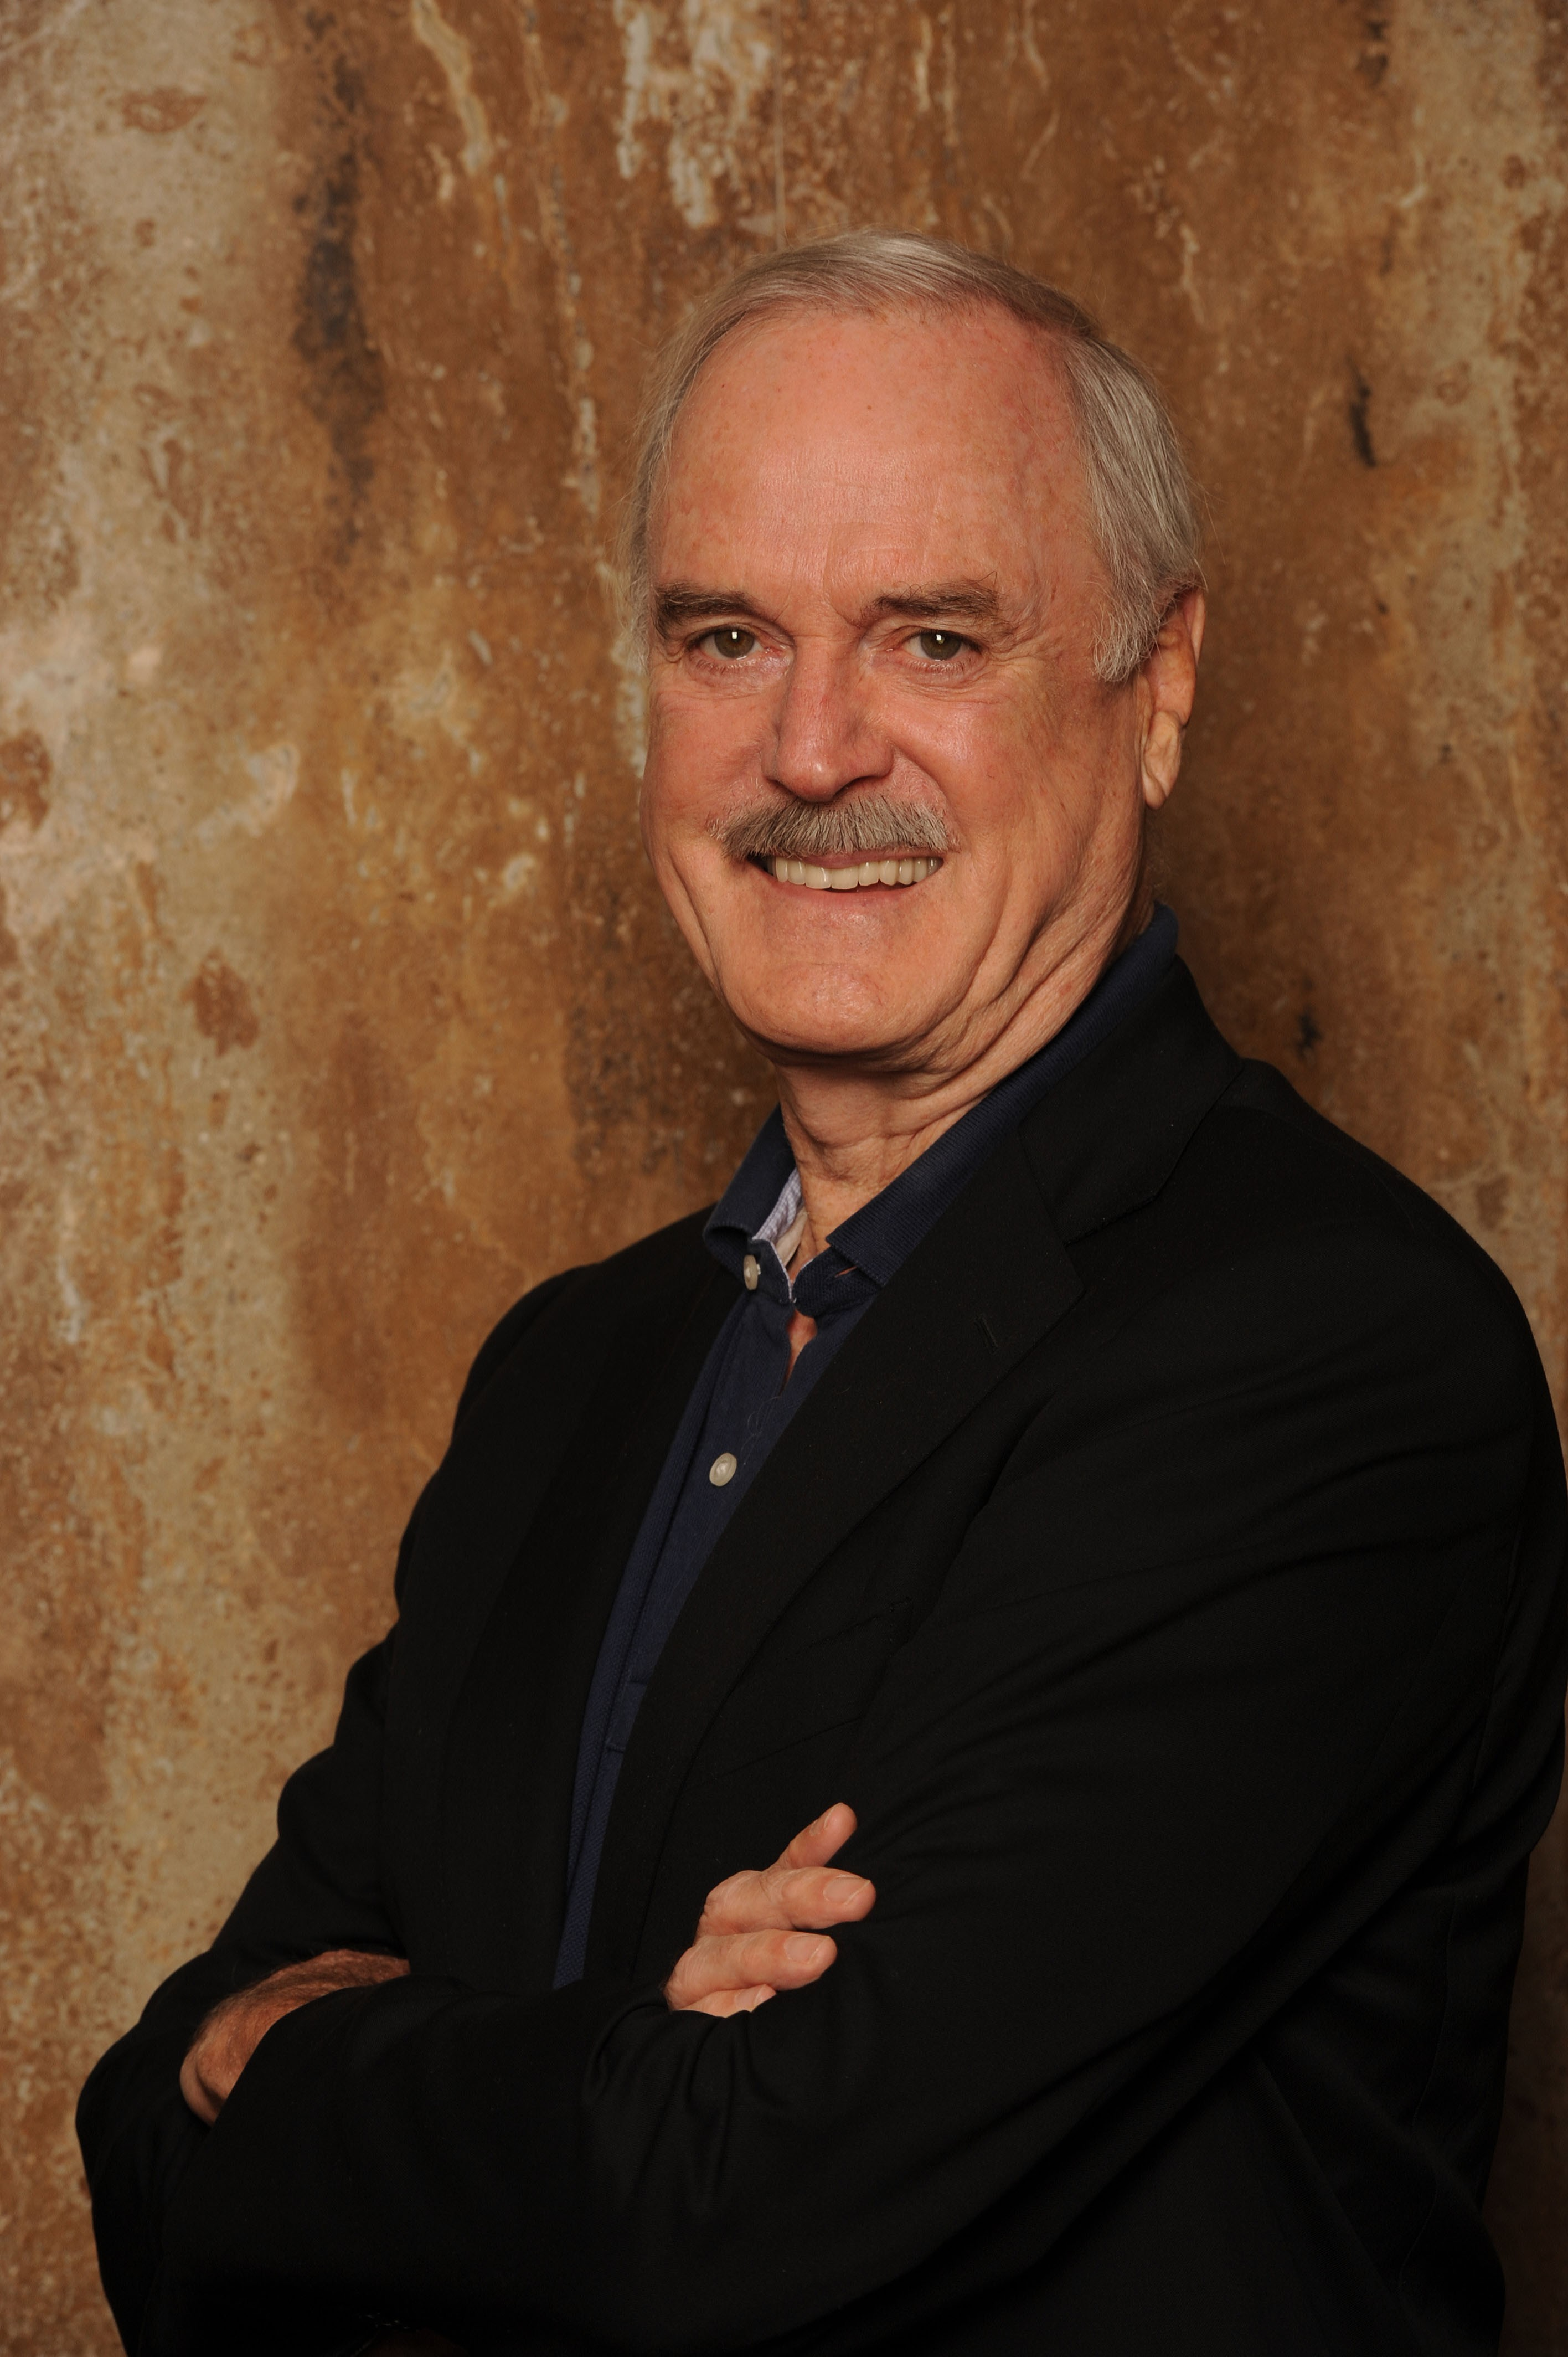 John Cleese On His New Tour With Eric Idle Bad Q Amp A